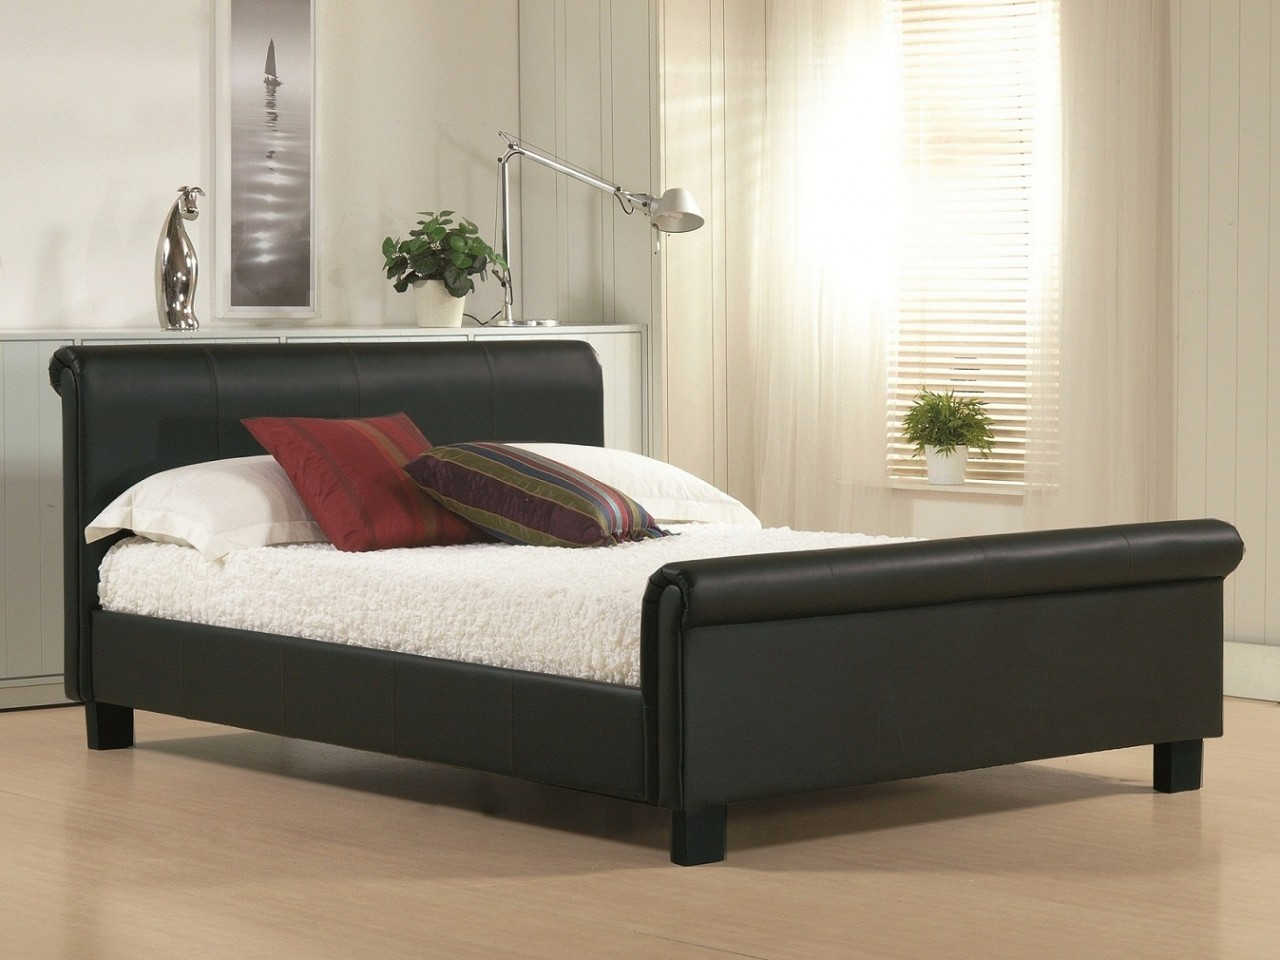 https://www.firstfurniture.co.uk/pub/media/catalog/product/a/u/aurora_black_96840_zoom_47801_zoom.jpg